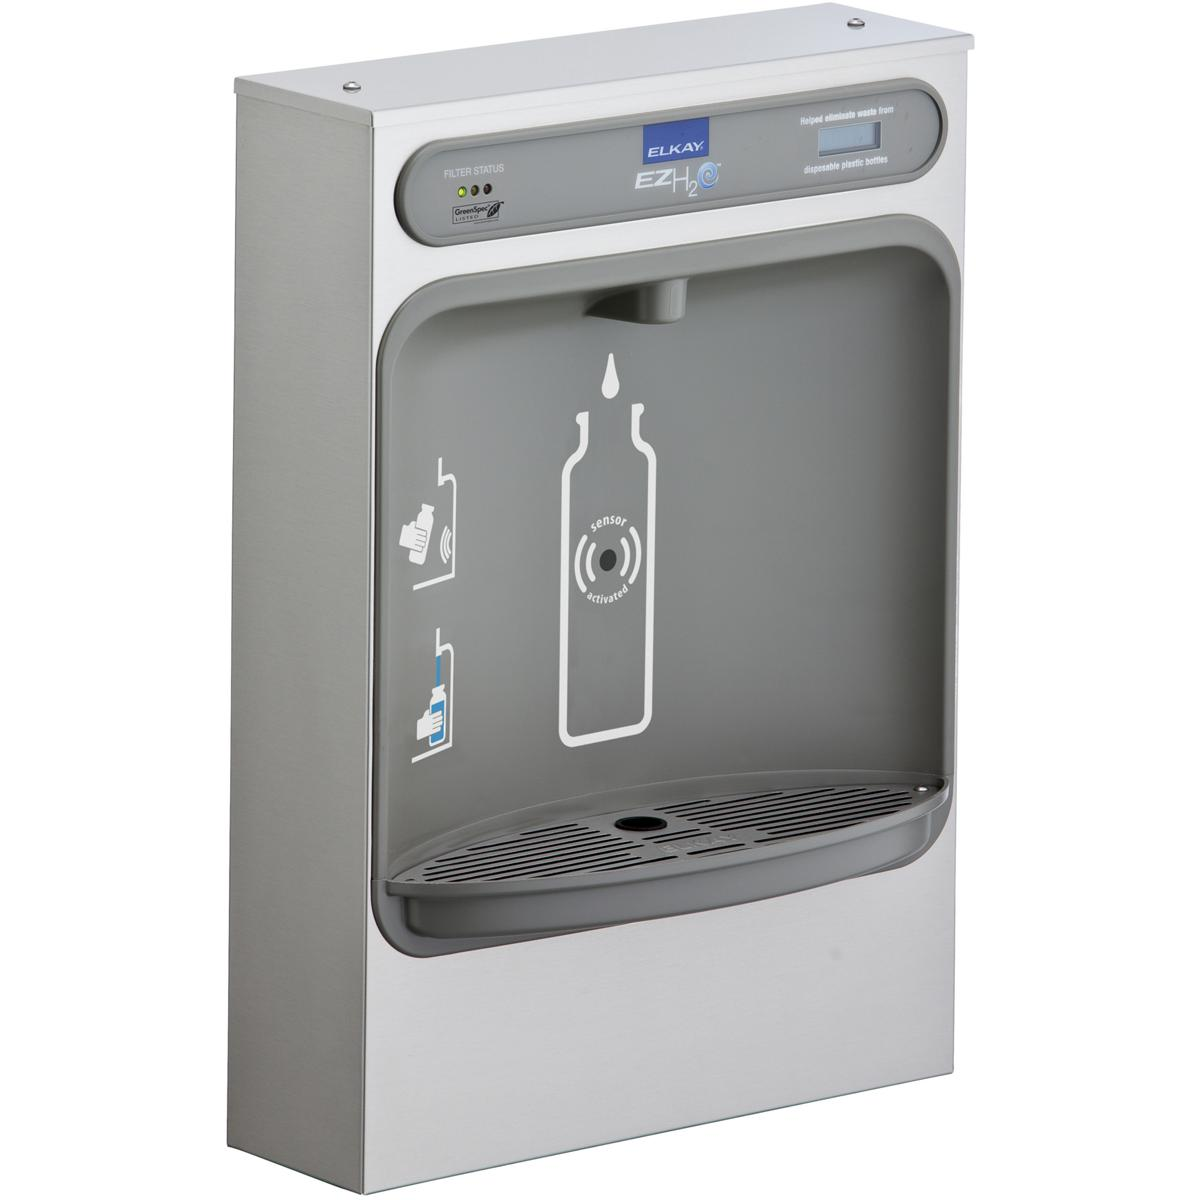 Elkay EZH2O Bottle Filling Station Surface Mount, Filtered Non-Refrigerated Stainless Stainless Steel